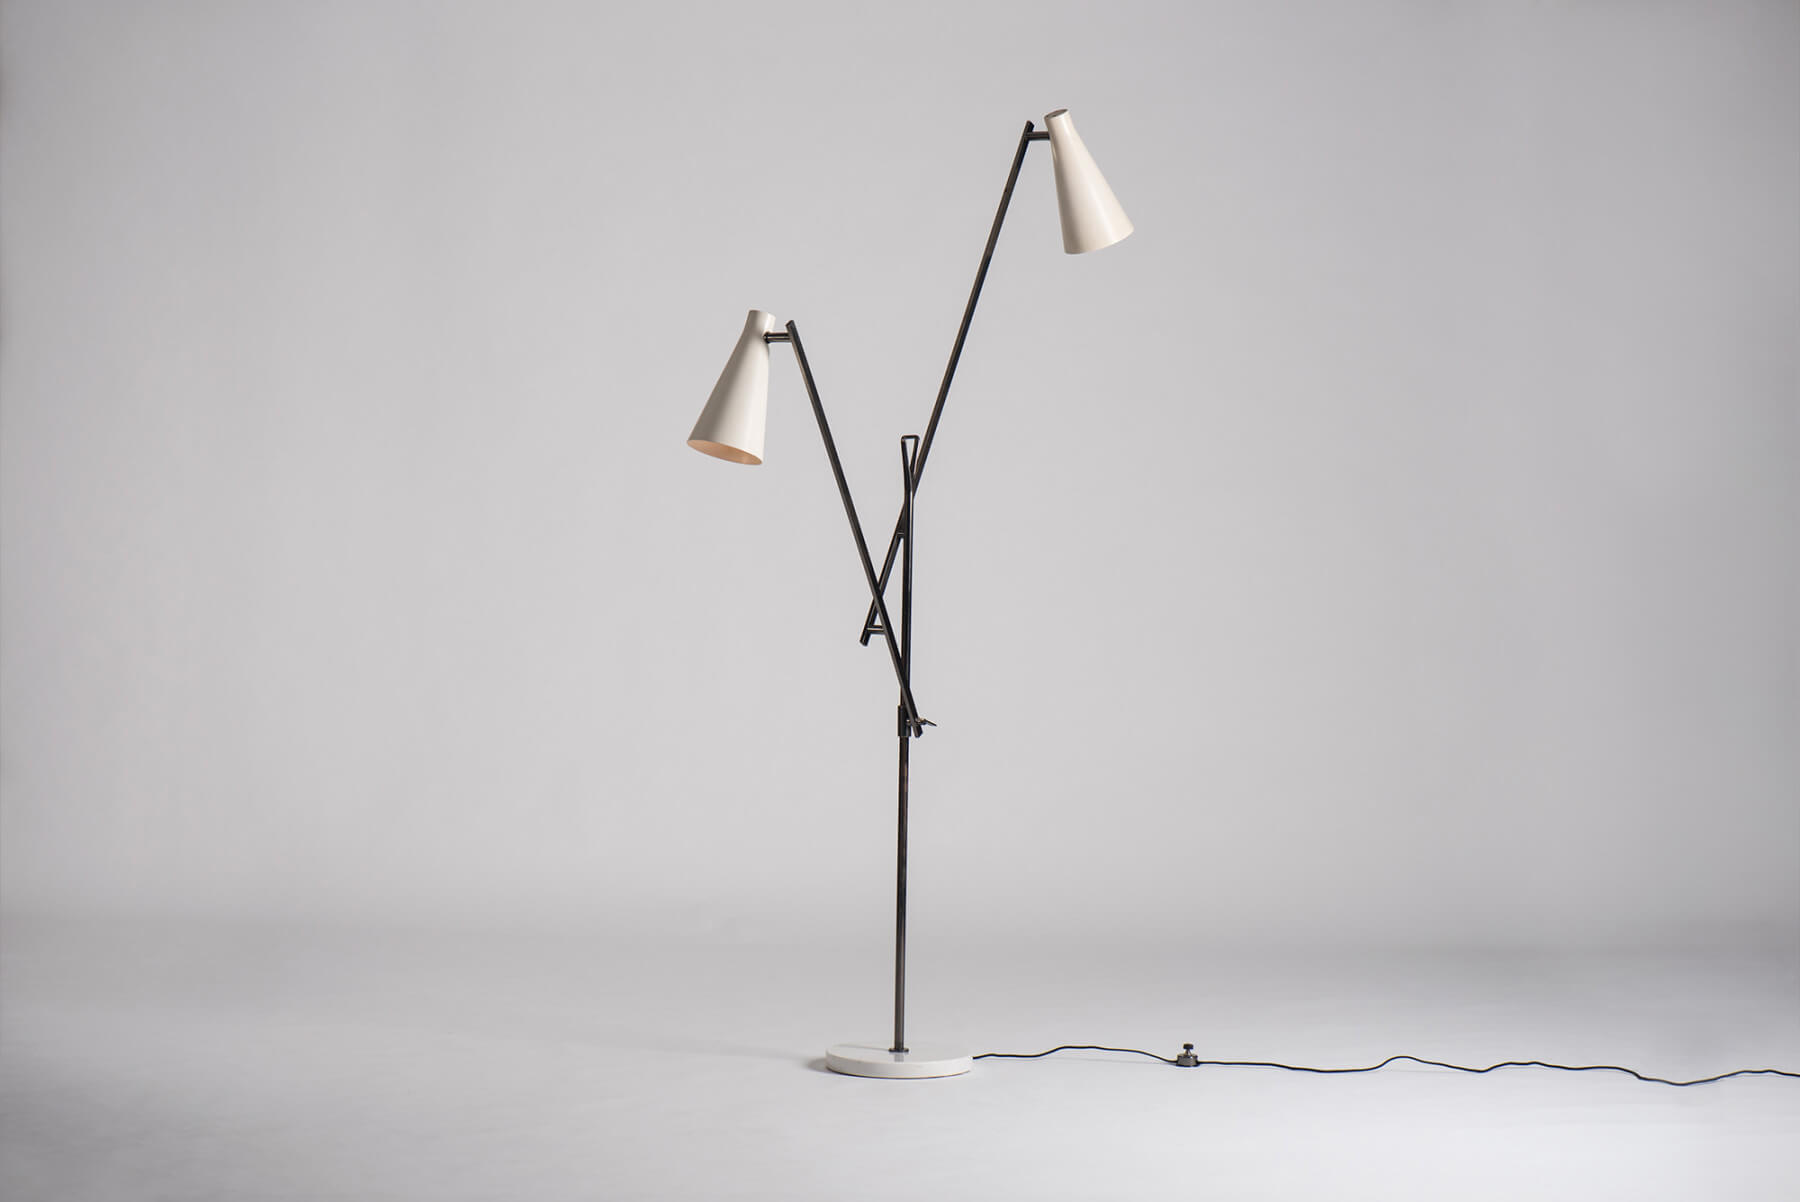 Buzzi & Buzzi Lighting franco buzzi - floor lamp | casati gallery